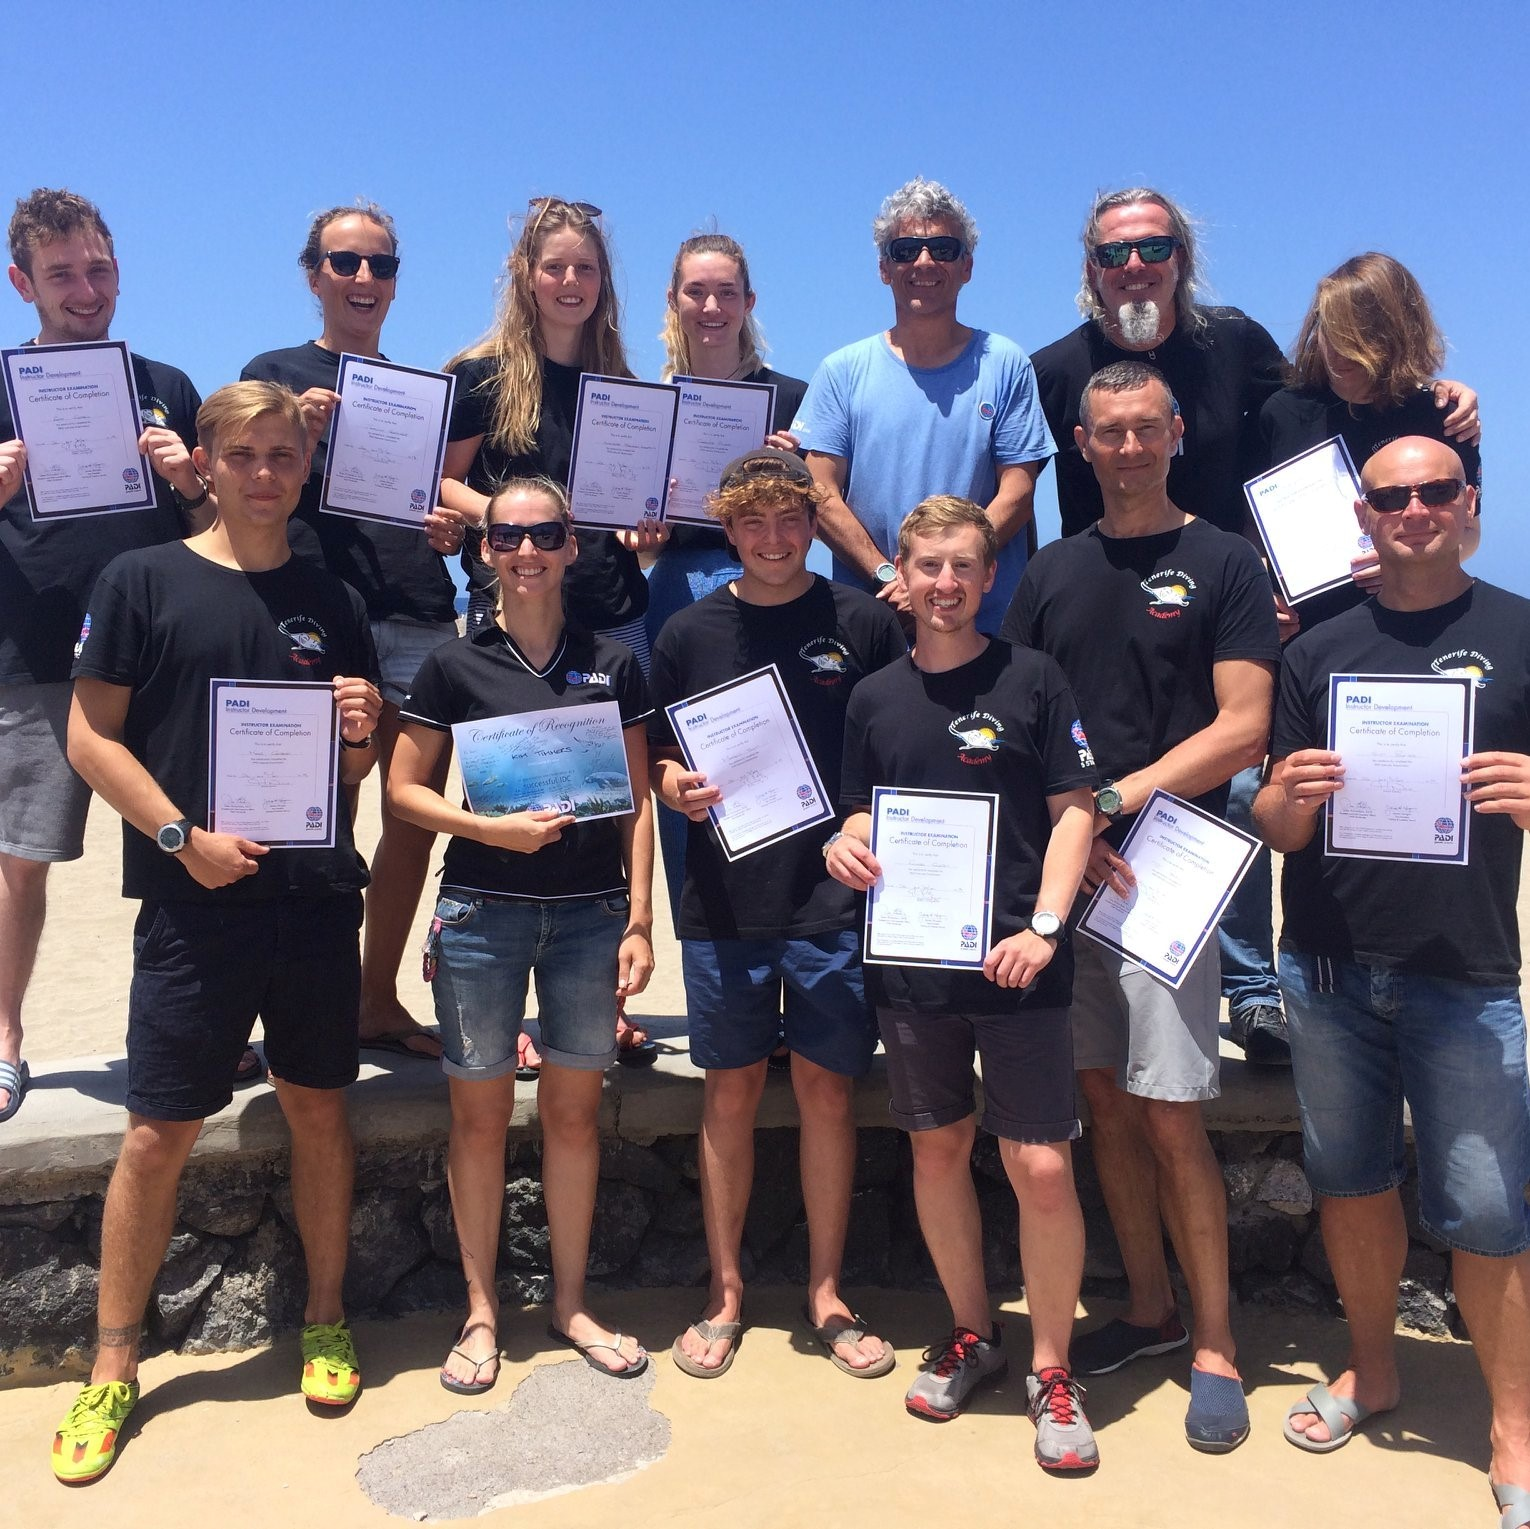 PADI Instructor Course IDC May 2019